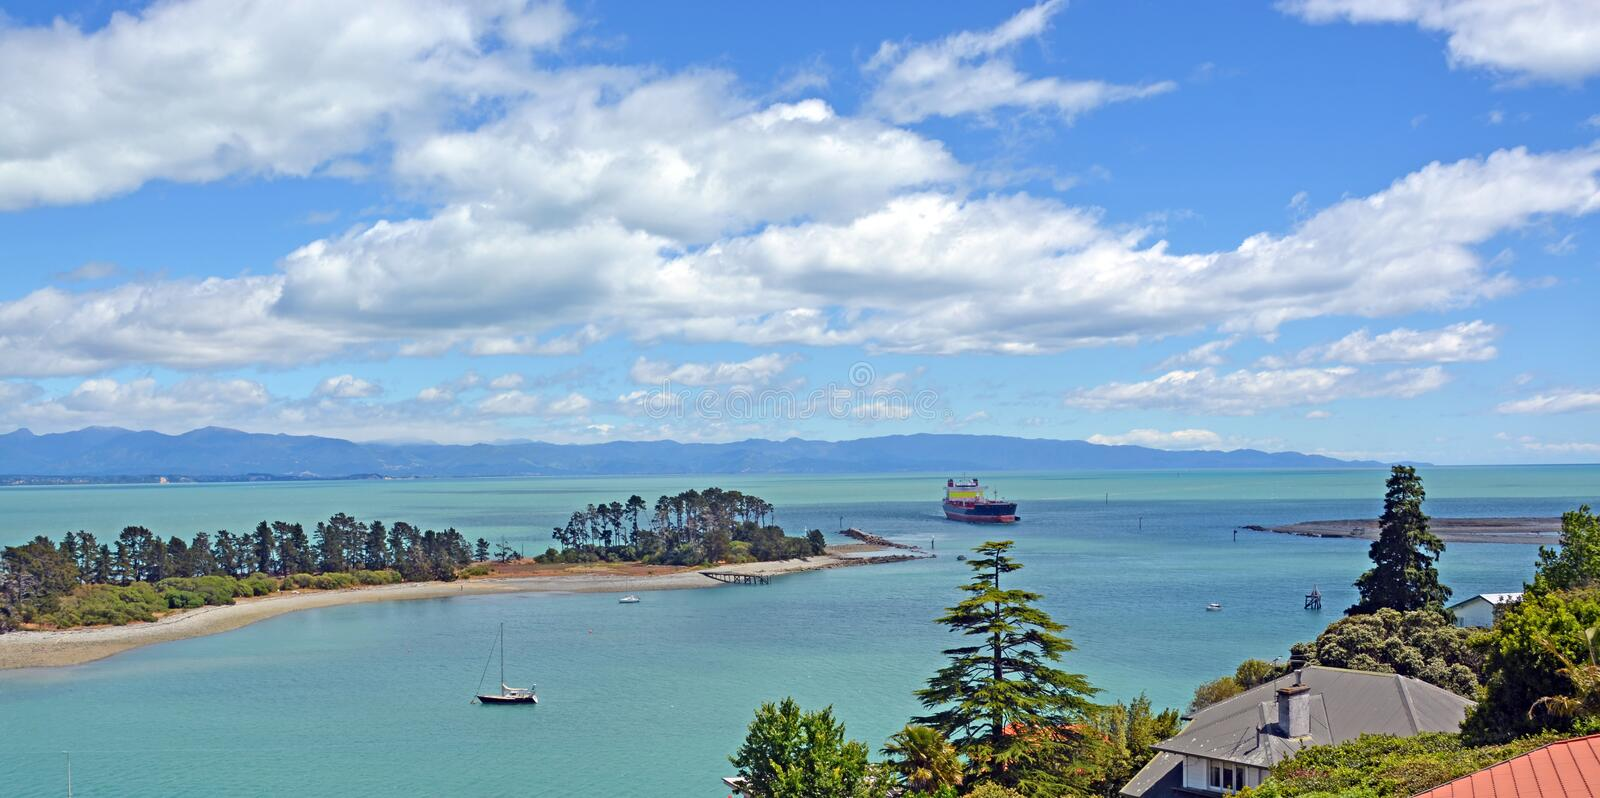 The Cut - Nelson, New Zealand. A container ship sails through the famous Cut - between Haulashore Island and The Boulder Bank in Nelson, New Zealand stock images